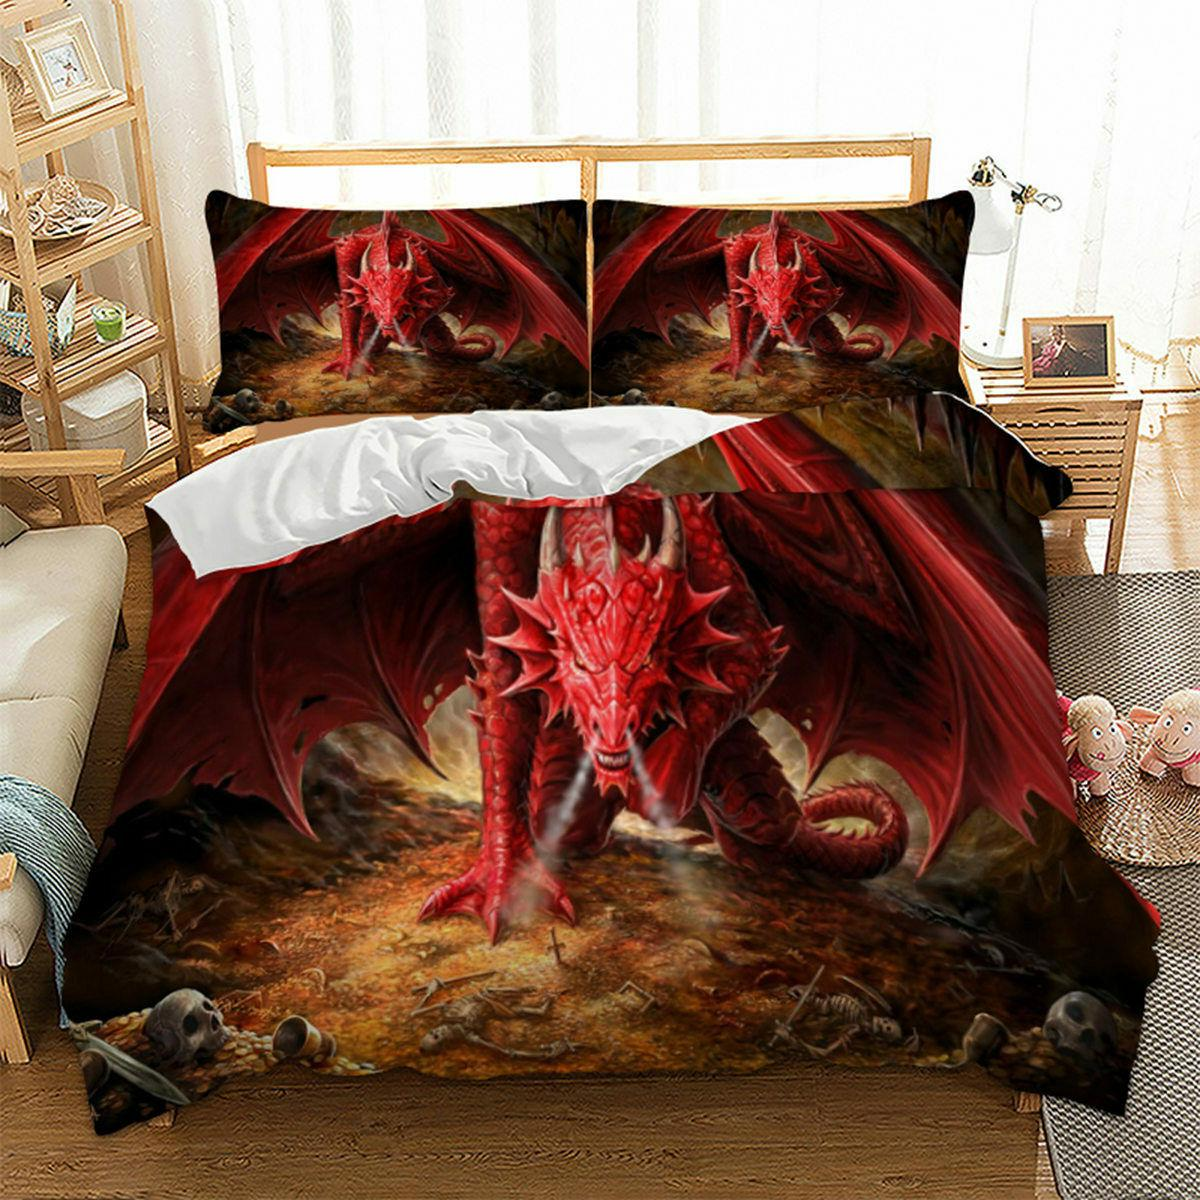 Red Dragon Duvet Cover Size Beddding Beast US